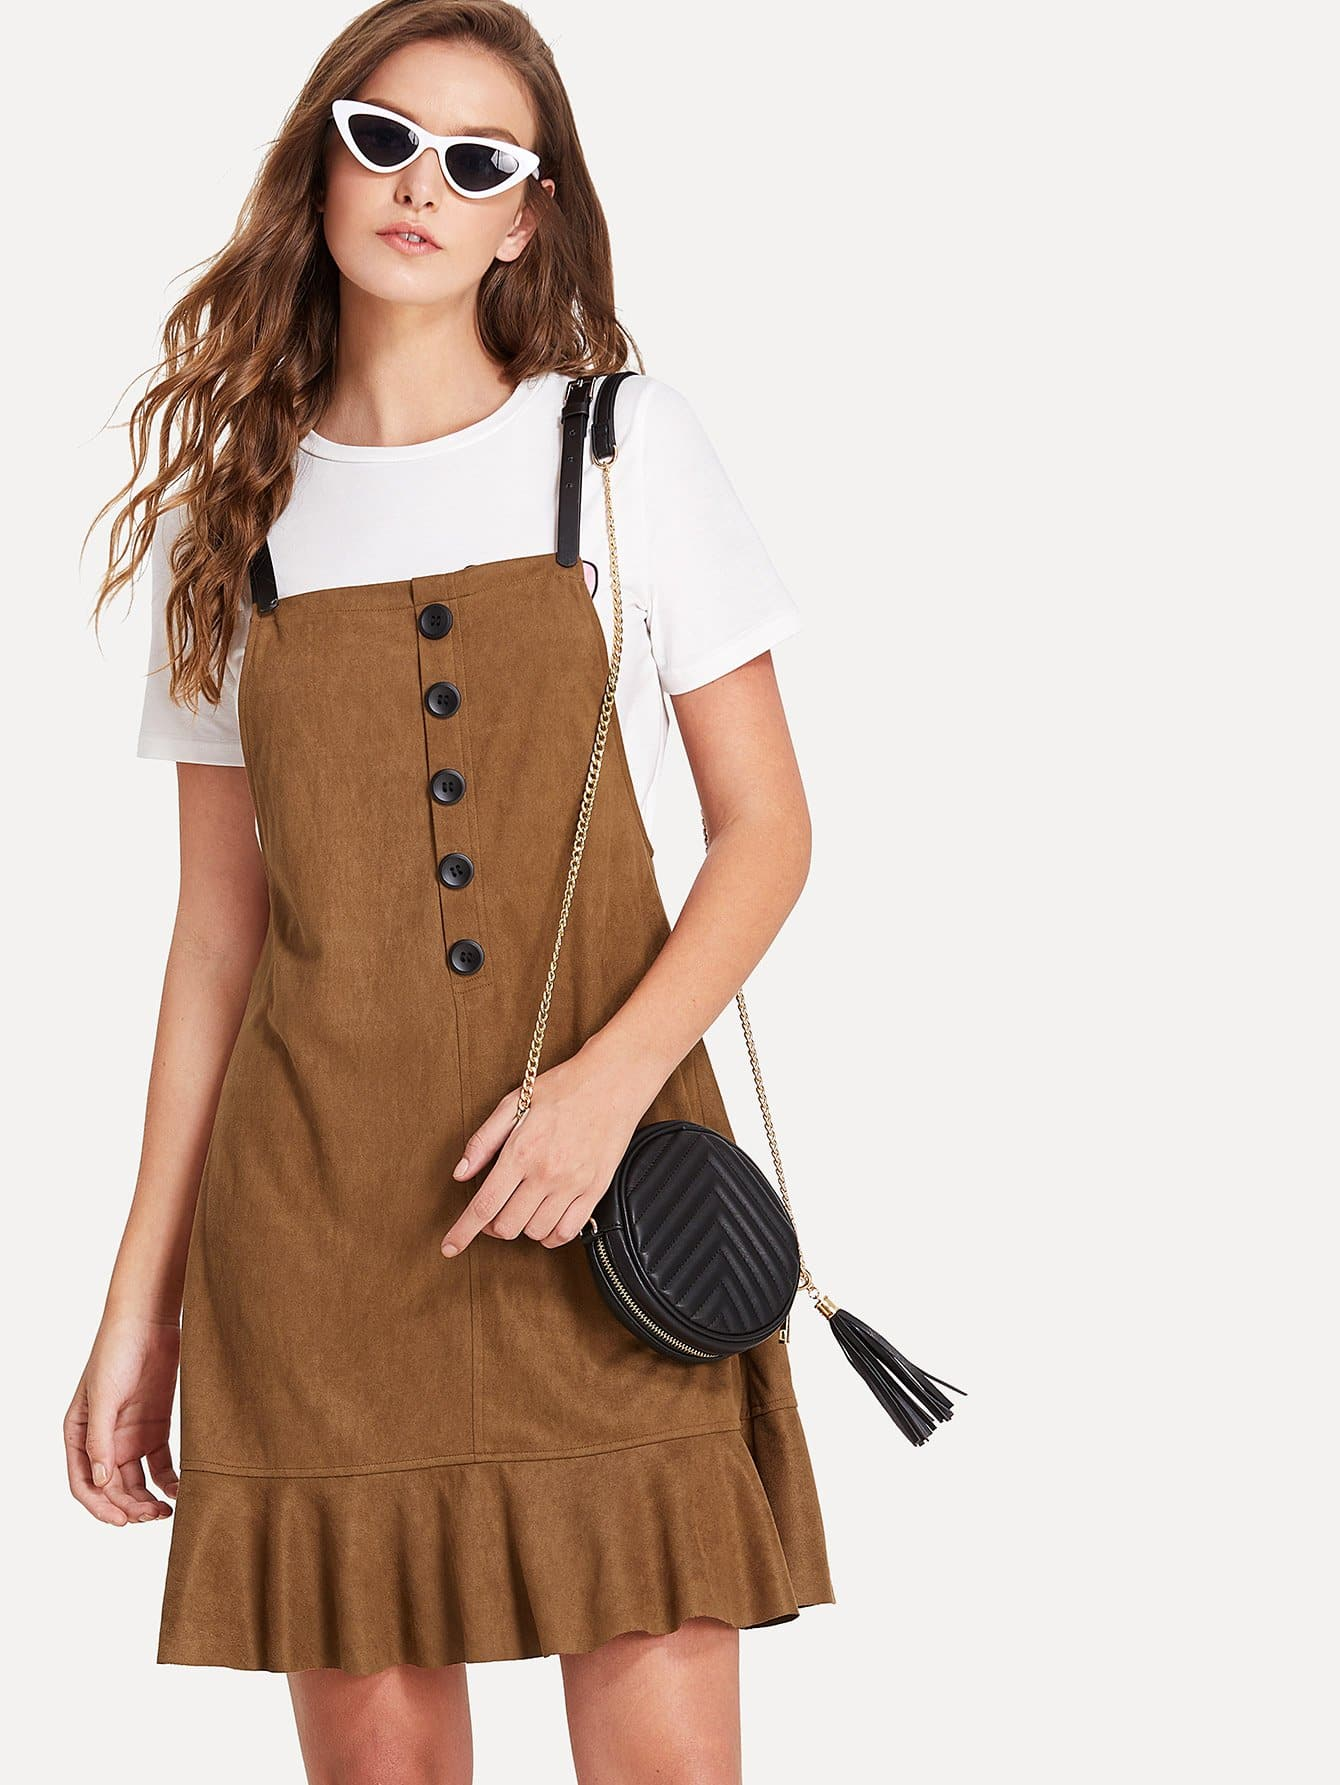 Button Up Front Ruffle Hem Suede Overall Dress surplice neck ruffle embellished button up dress